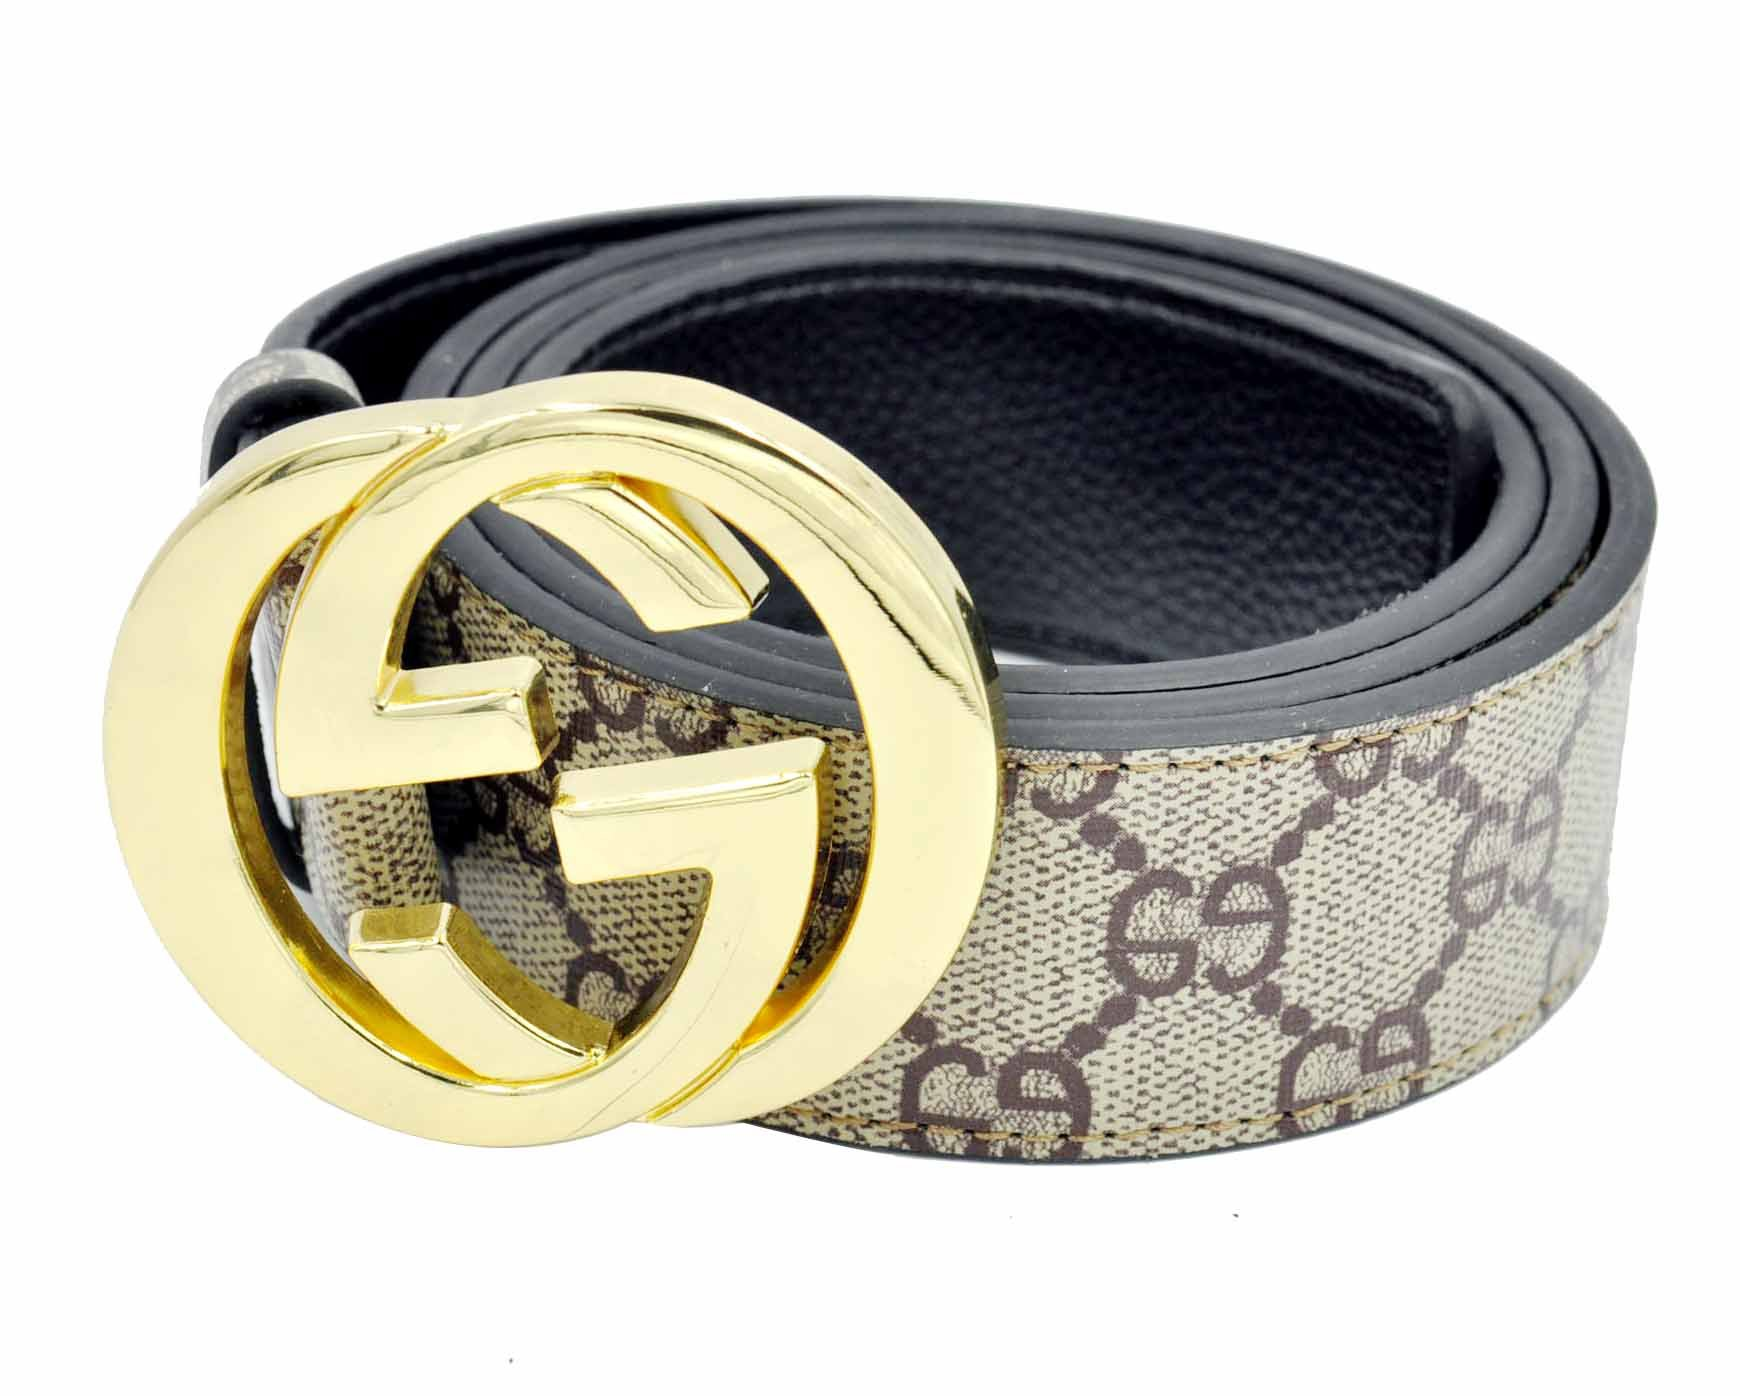 HE-products G-Style unisex Business Casual Belt [3.8CM] (Brown with gold buckle, 115CM[Waist 33-35])